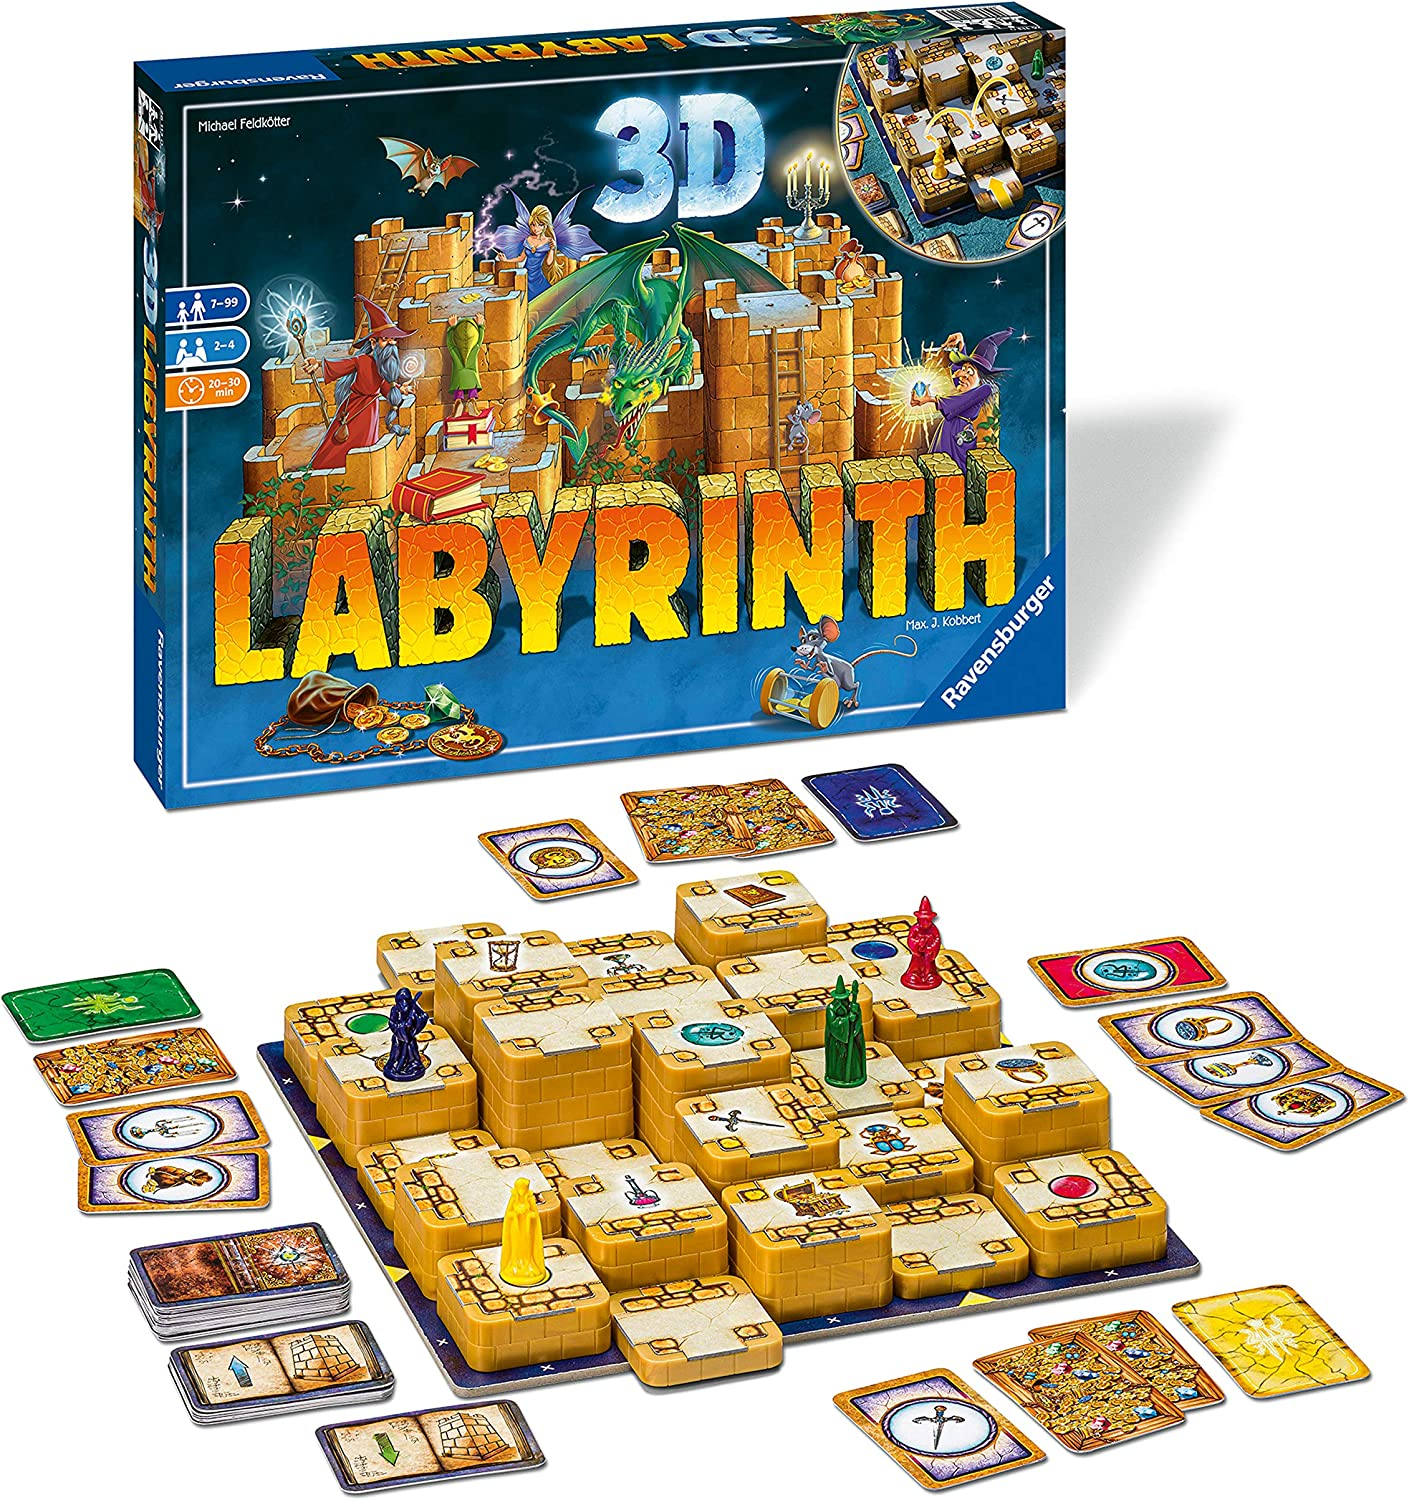 Ravensburger 3D Labyrinth Family Board Game for Kids & Adults Age 7 & Up - So Easy to Learn & Play with Great Replay Value Amazon Exclusive (26831)